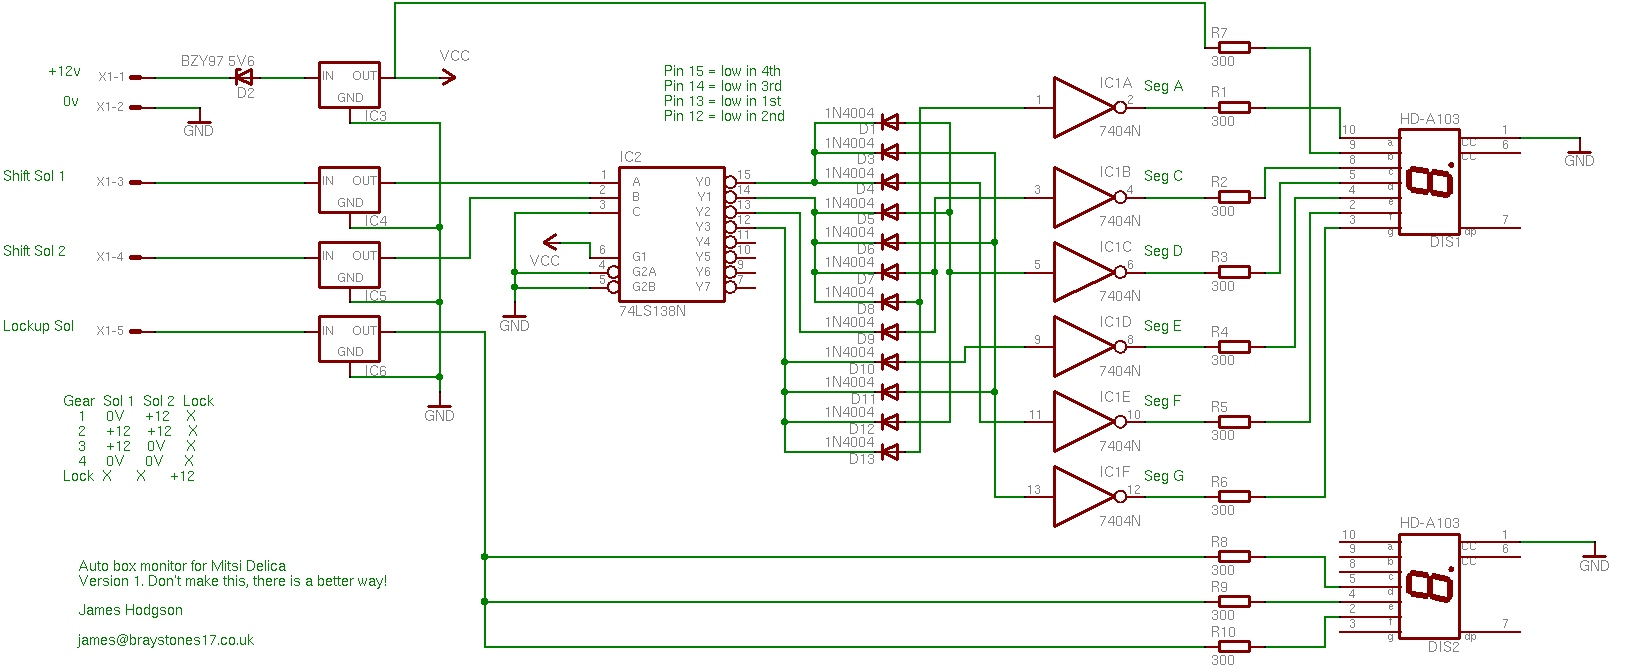 Mitsubishi Fto Wiring Diagram Trusted Wiring Diagrams \u2022 3000GT Fuse  Box Mitsubishi Fto Fuse Box